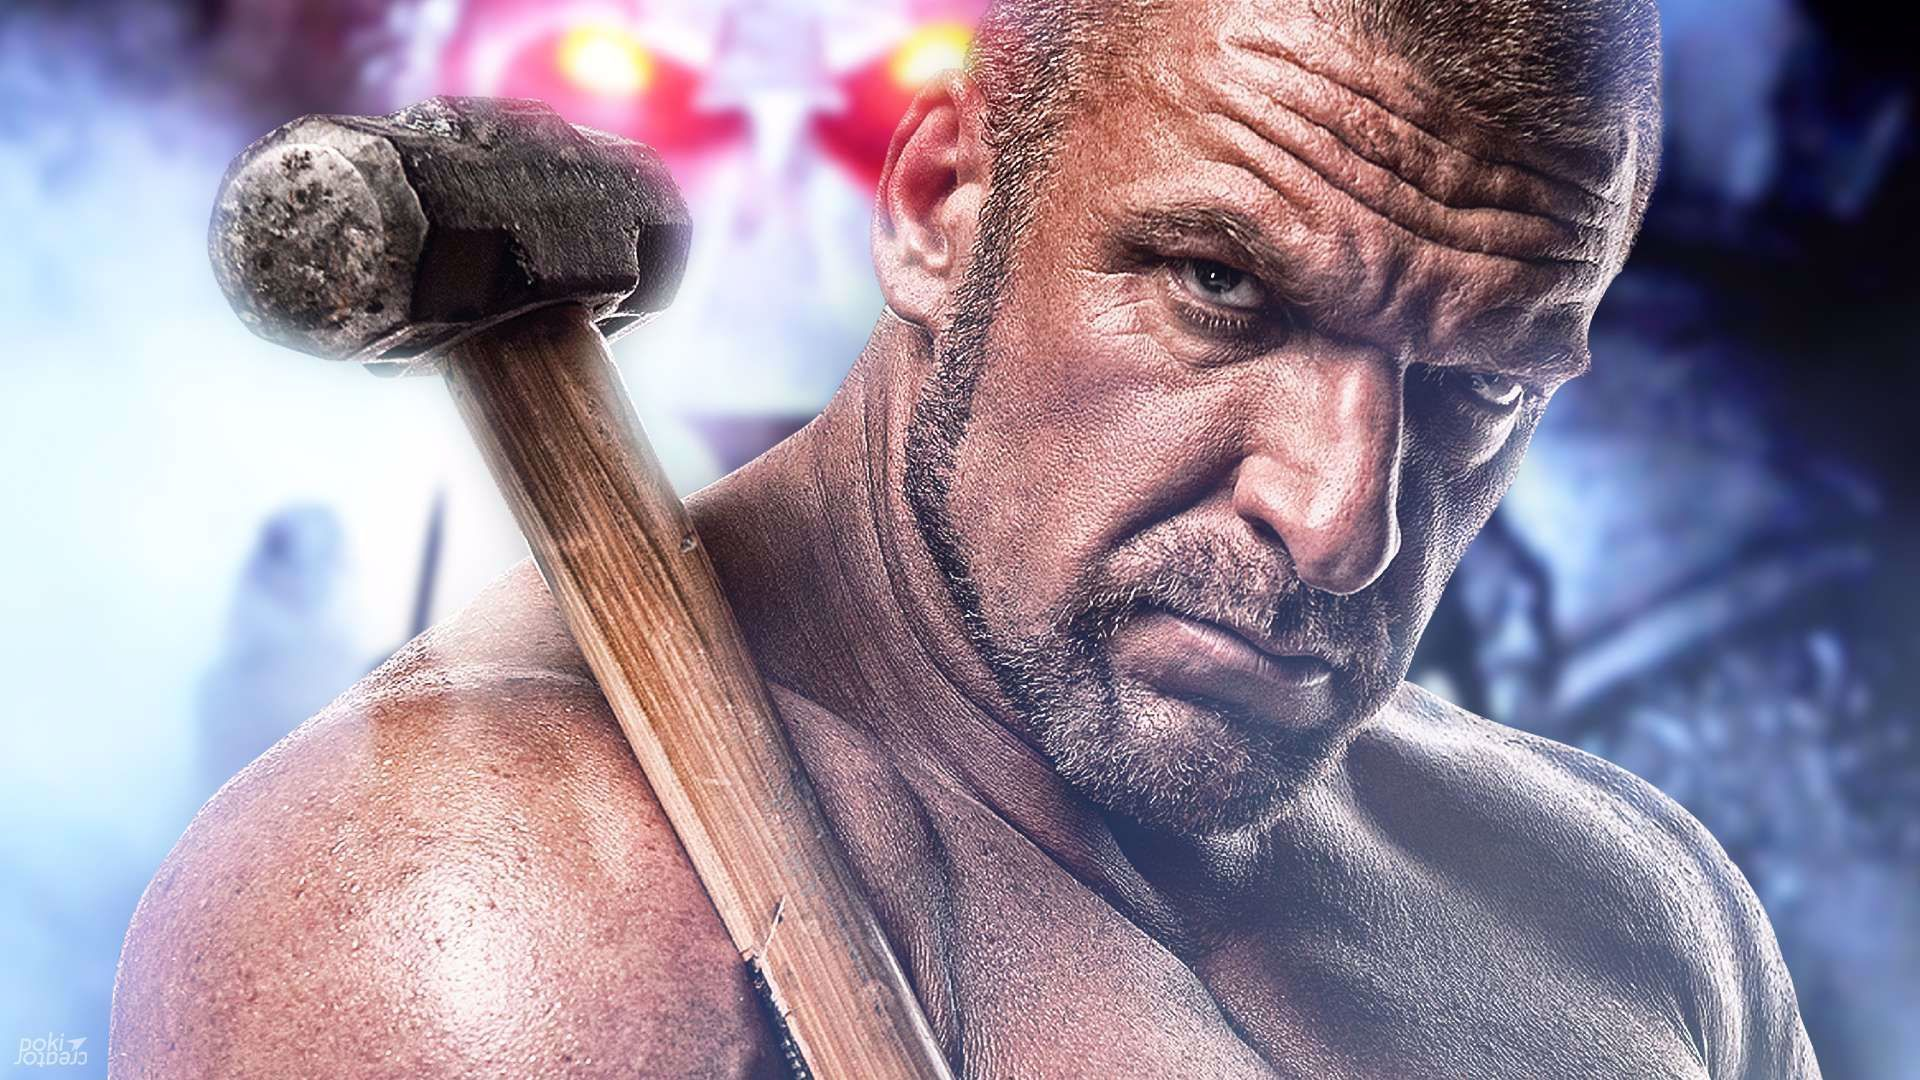 Free Download Wallpapers Of Triple H Triple H Hd Wallpapers 2017 Triple H Tattoo Triple H Wallpapers Triple H Hd Pictures Triple H Triple H Wwe Wwe World